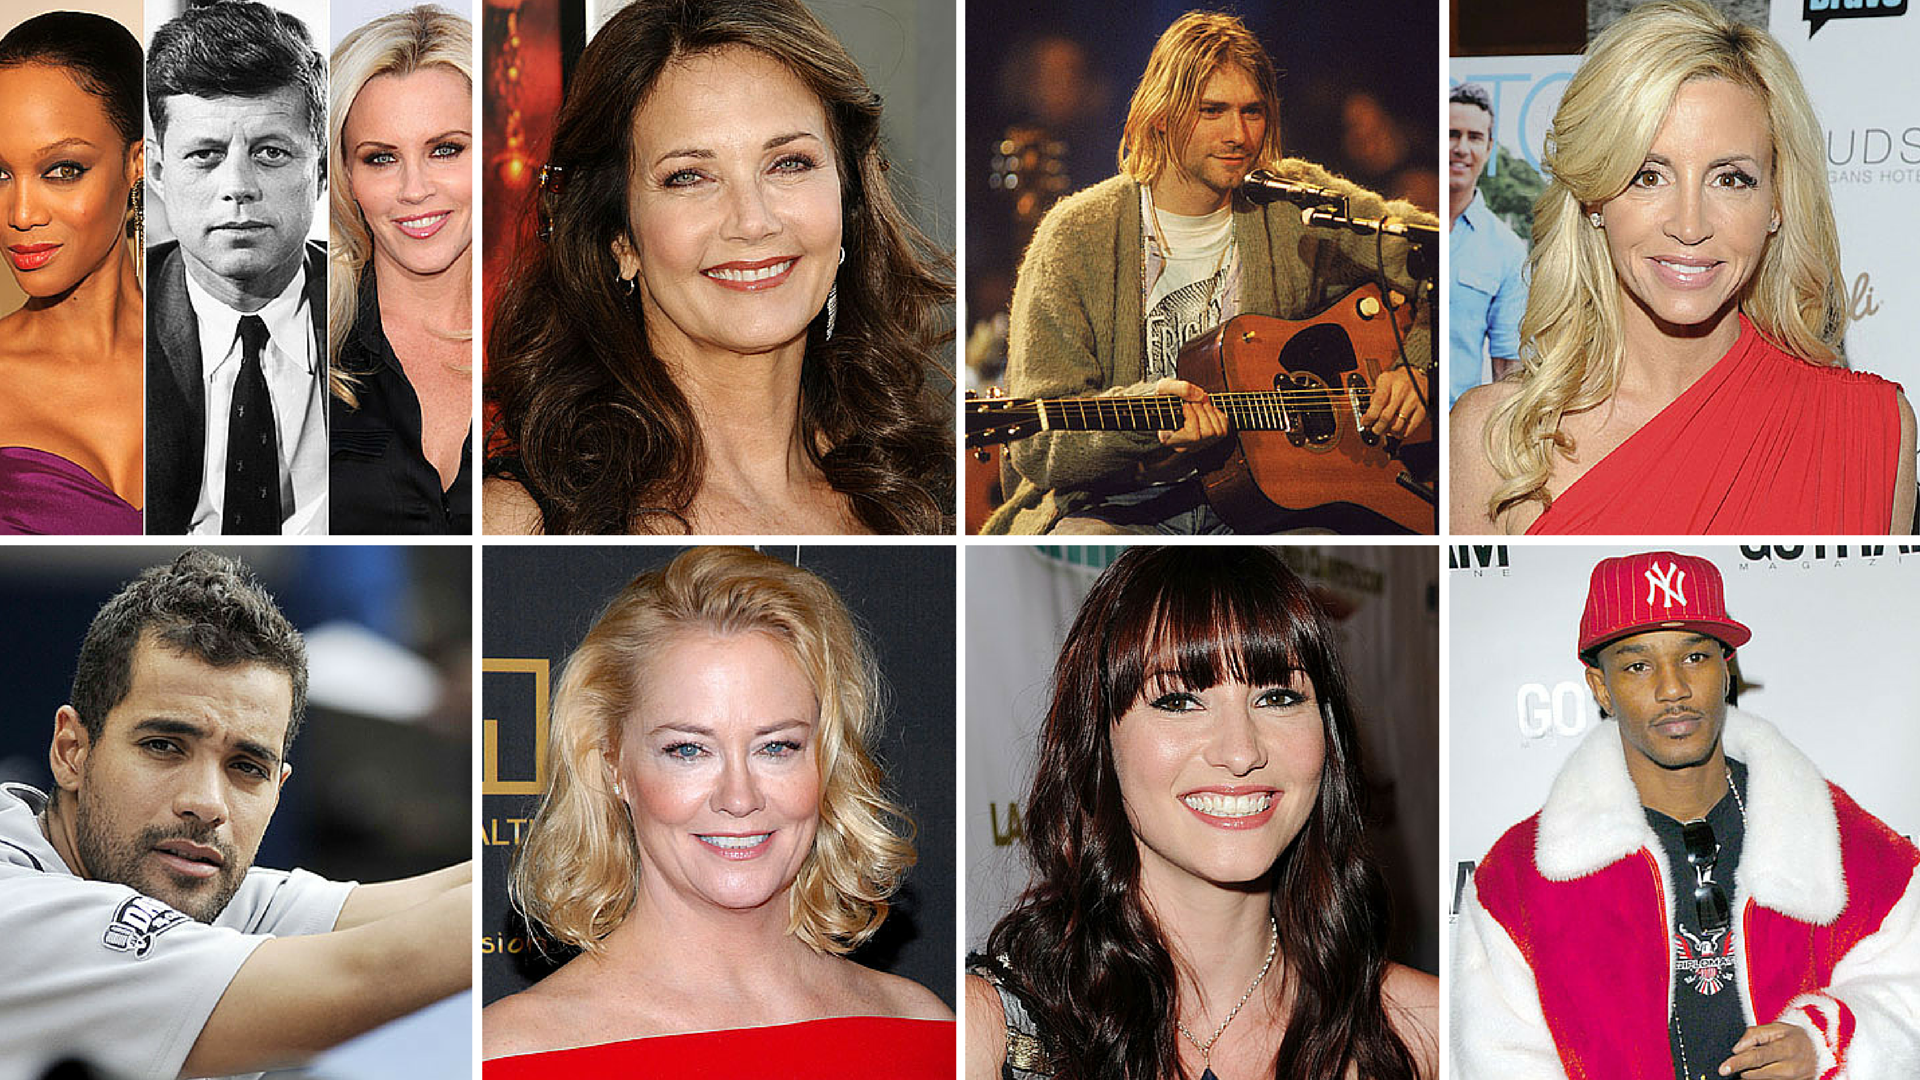 Famous People With IBS - Irritable Bowel Syndrome